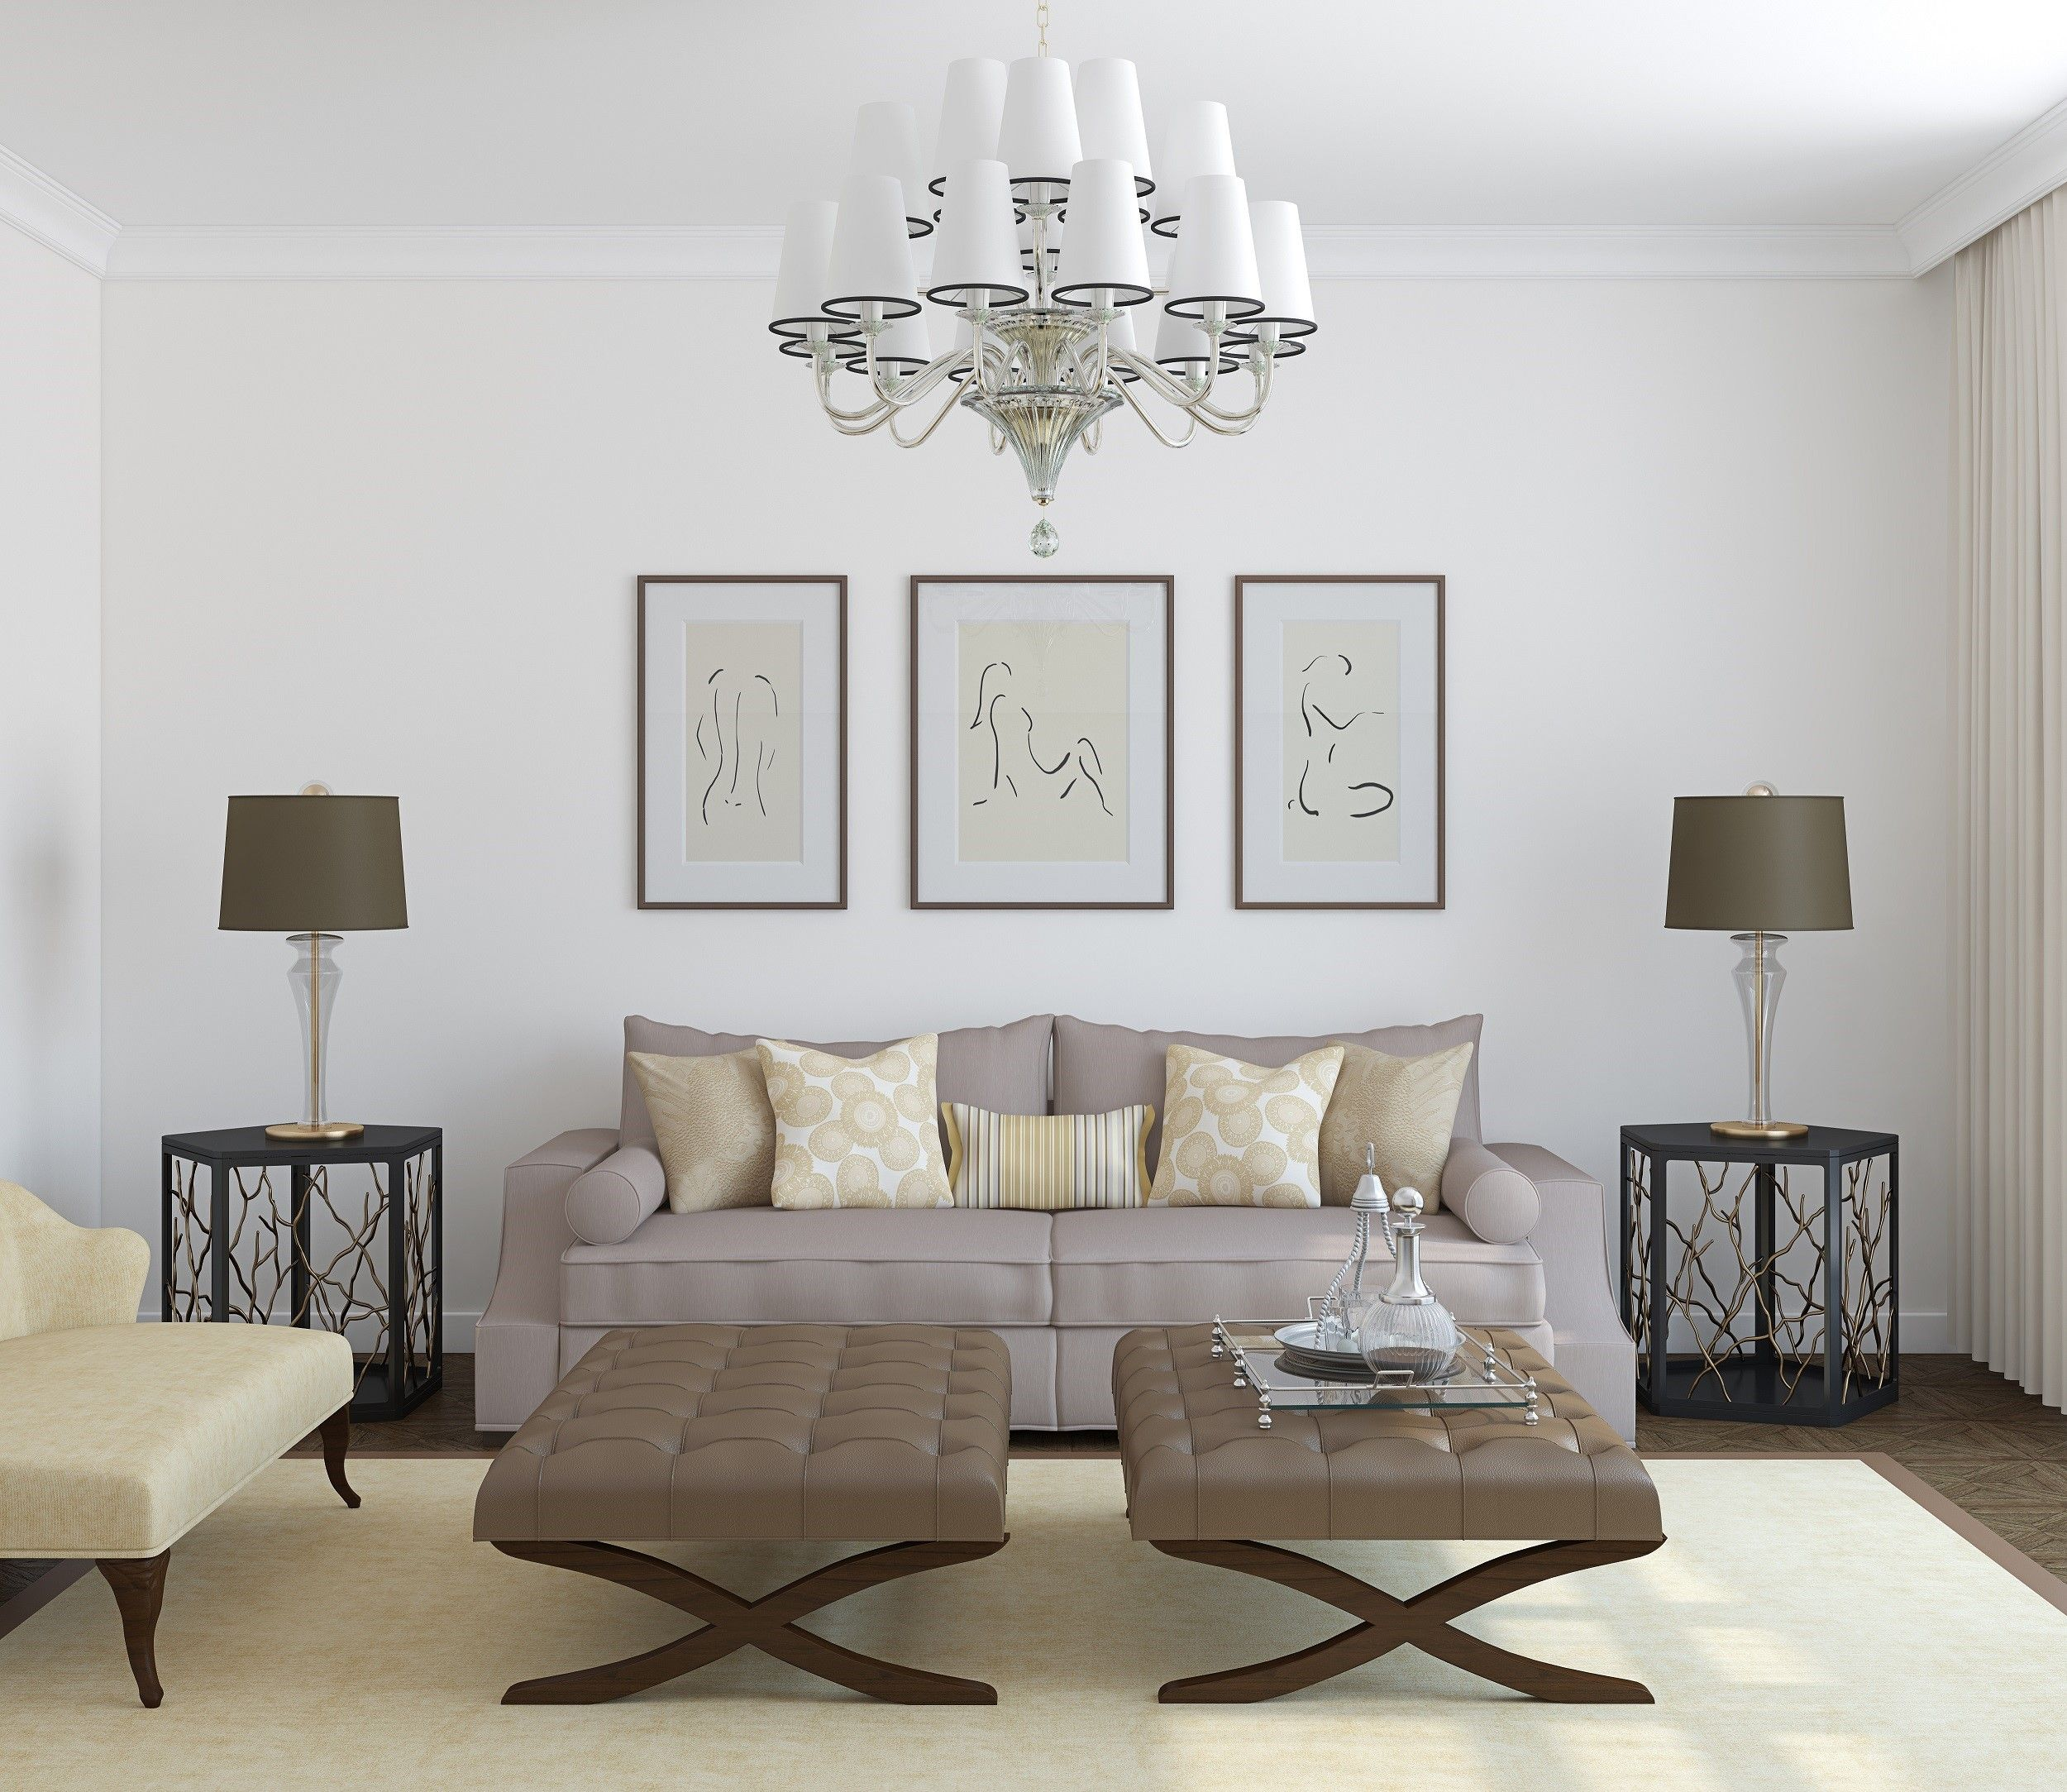 We love this symmetrical style #interiordesign